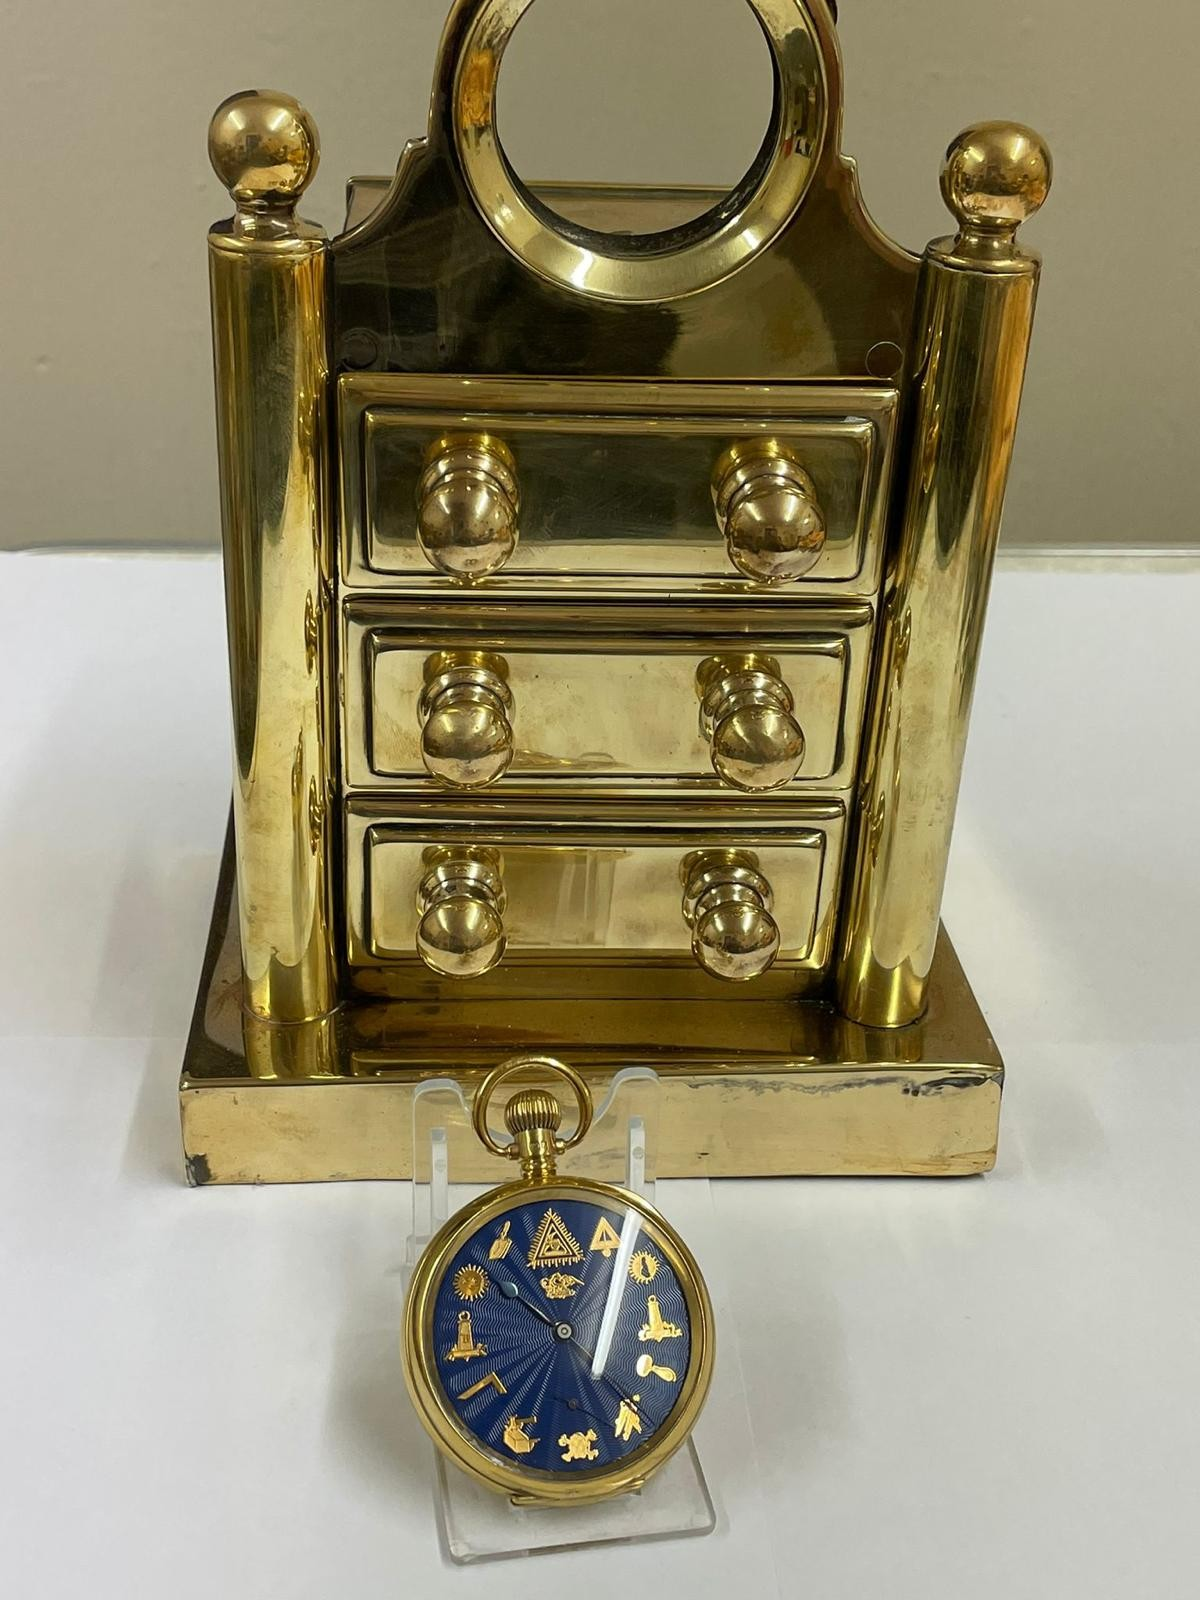 Vintage Masonic Rolex pocket watch with stand good condition and good working order but no - Image 18 of 21